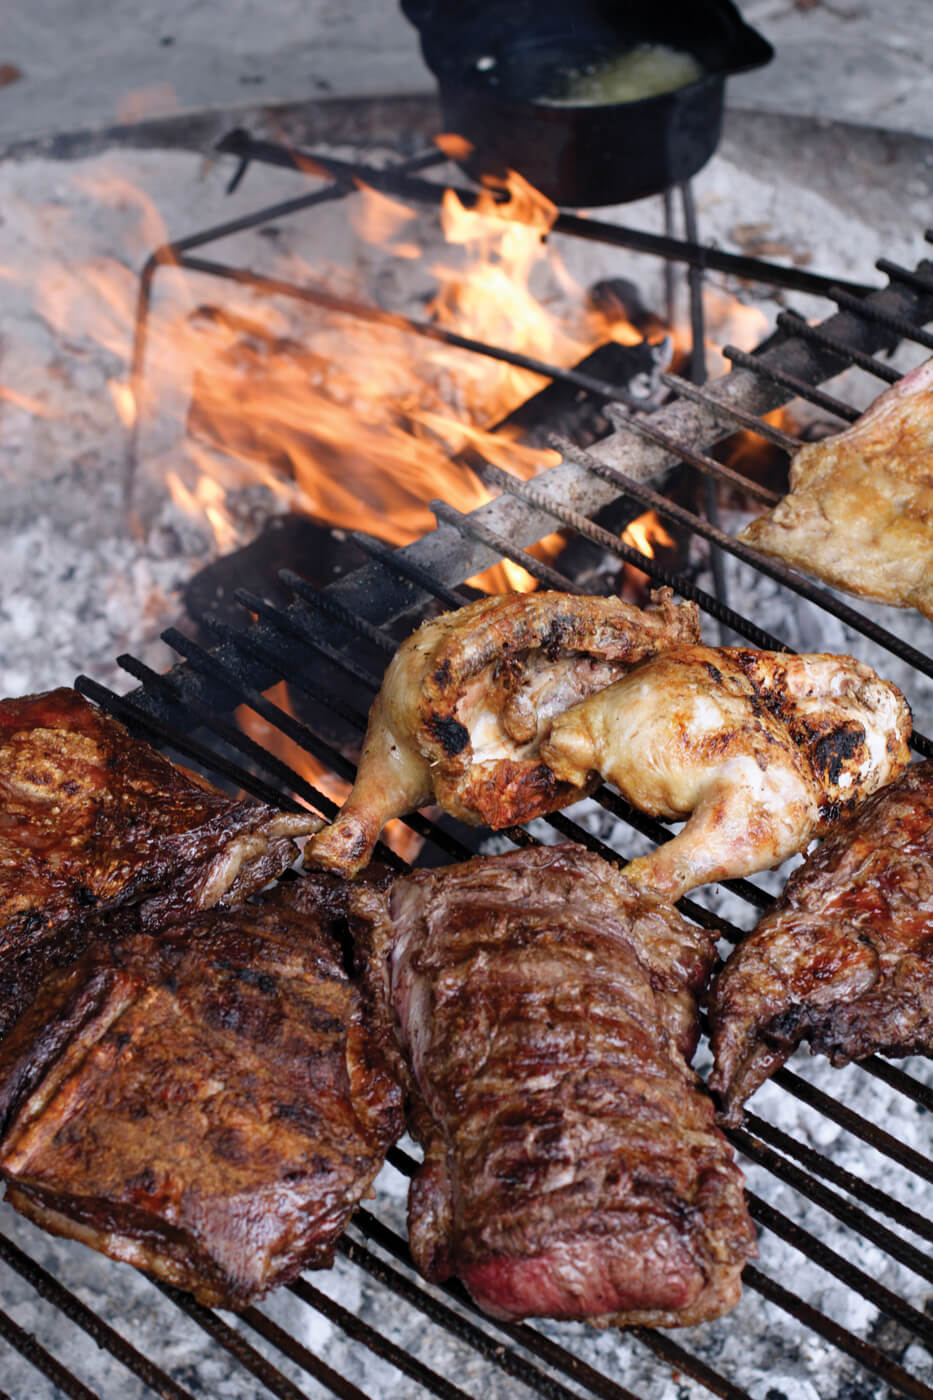 Mastering some grilling basics will give you the skillset to eventually start cooking several cuts of meat at once, whether it be beef, chicken or lamb.